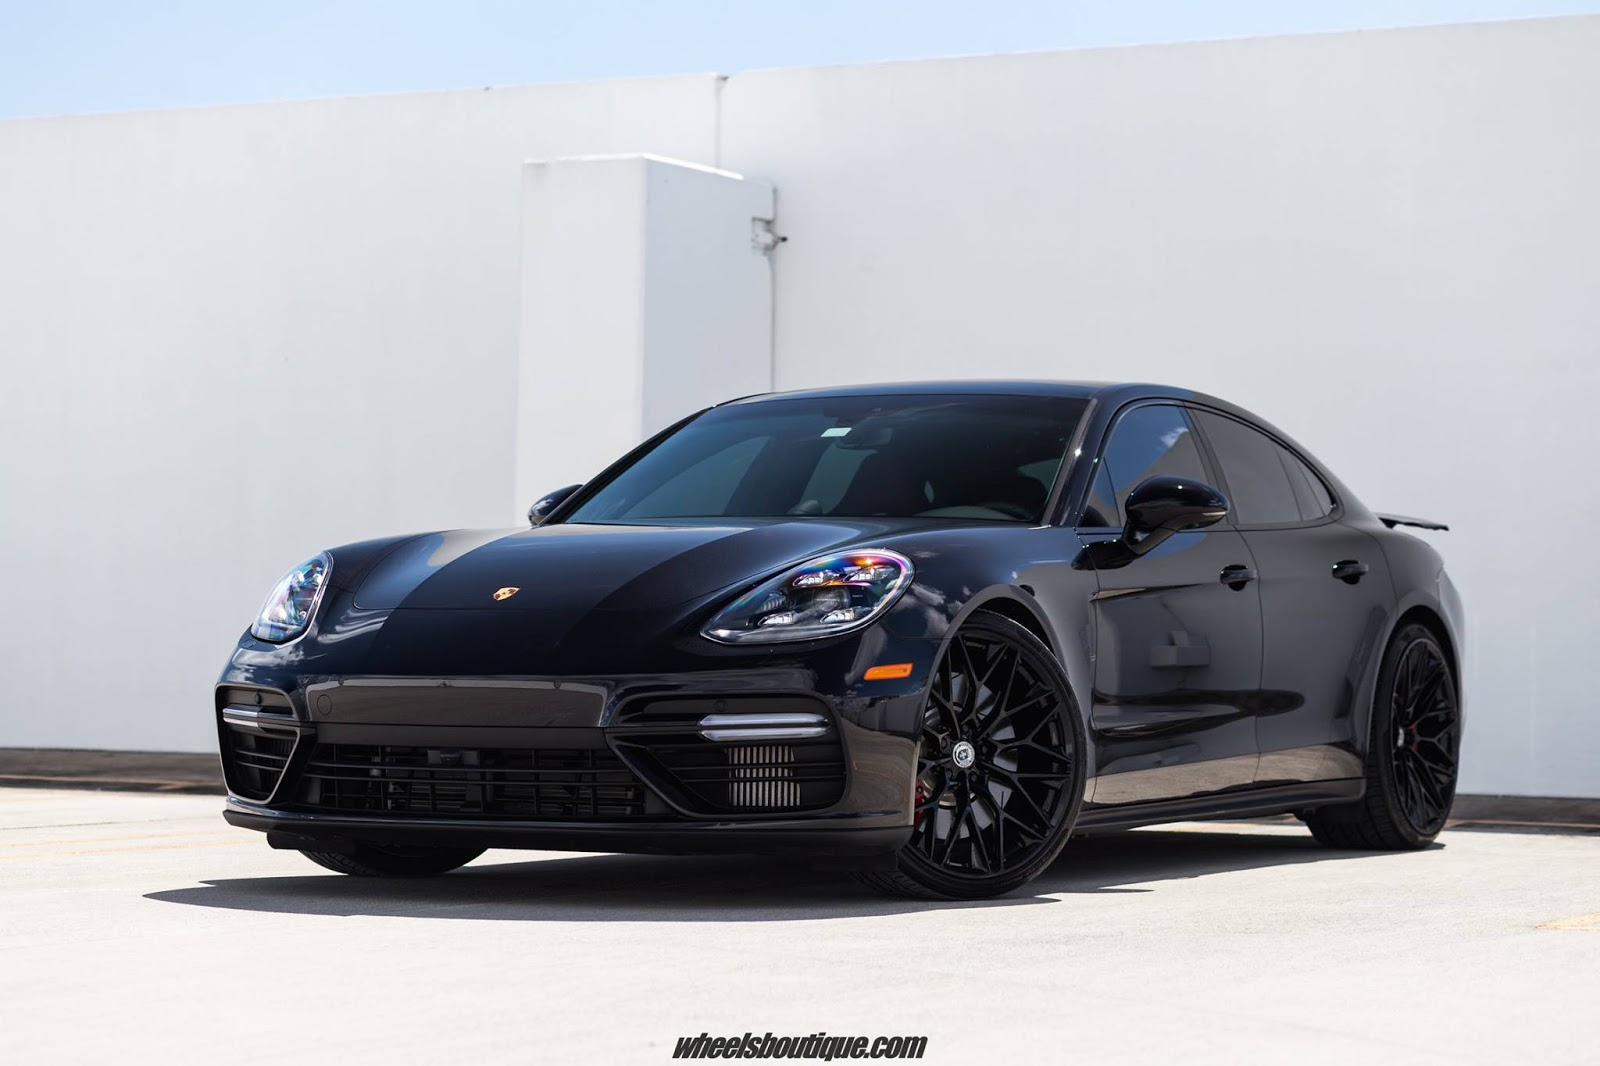 new porsche panamera looks even better with aftermarket wheels carscoops. Black Bedroom Furniture Sets. Home Design Ideas